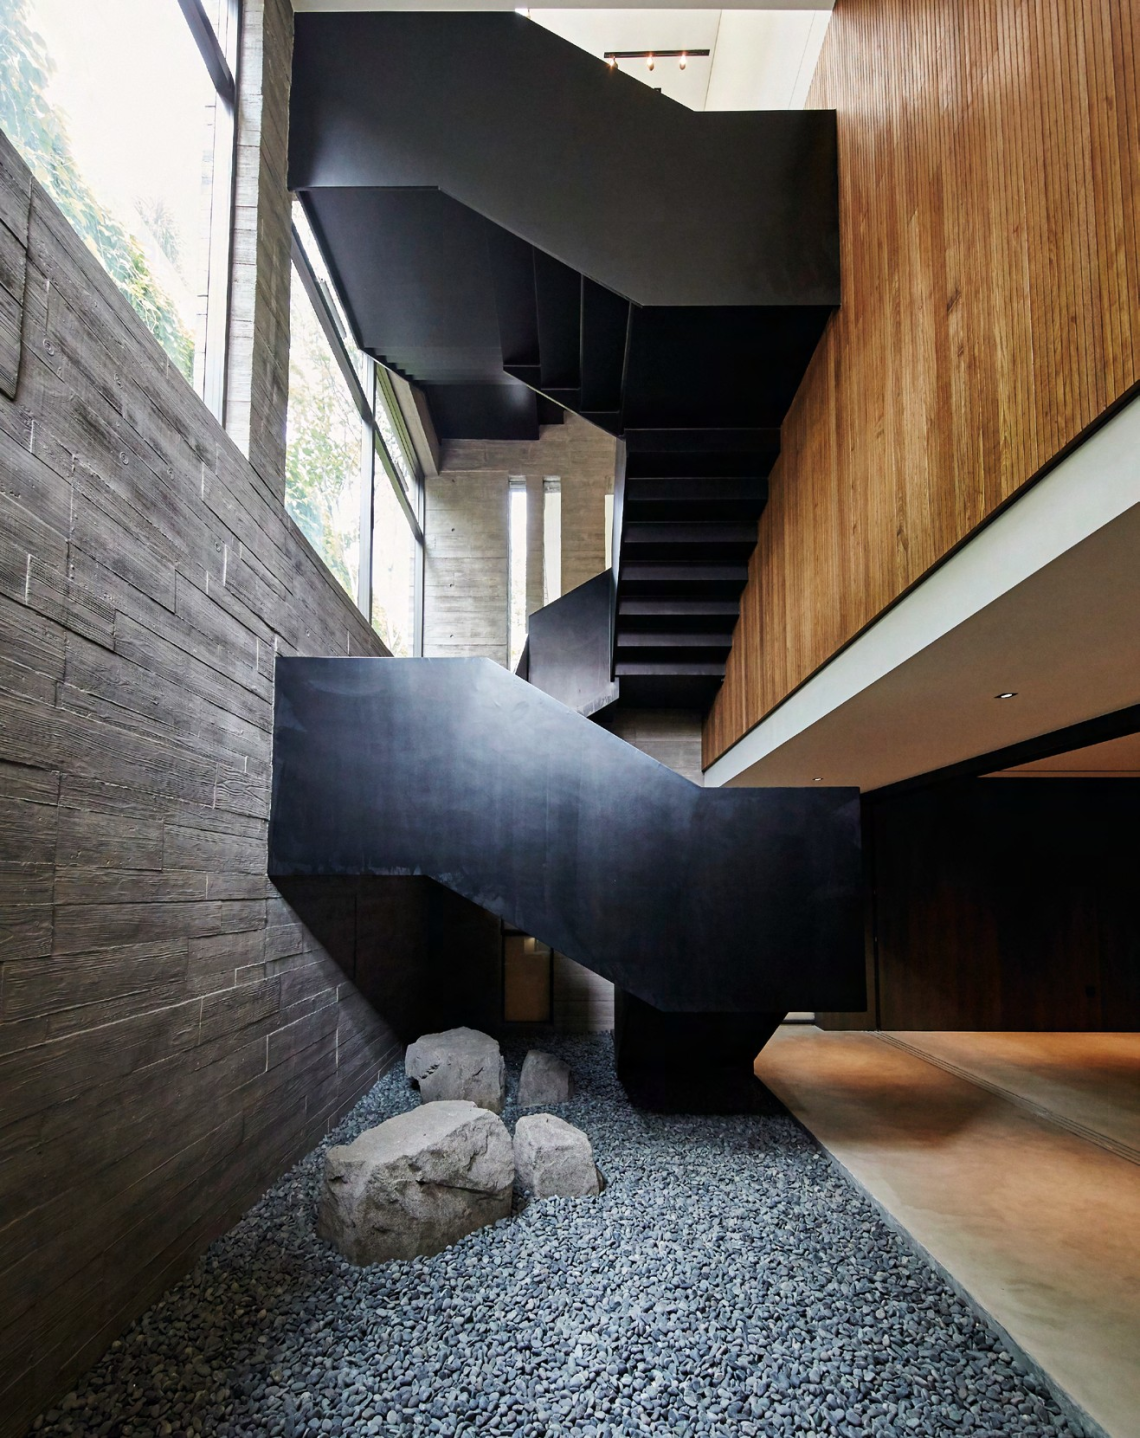 A staircase constructed out of folded black sheet metal takes centre stage within the double volume space, and serves as a sculptural expression of vertical circulation.